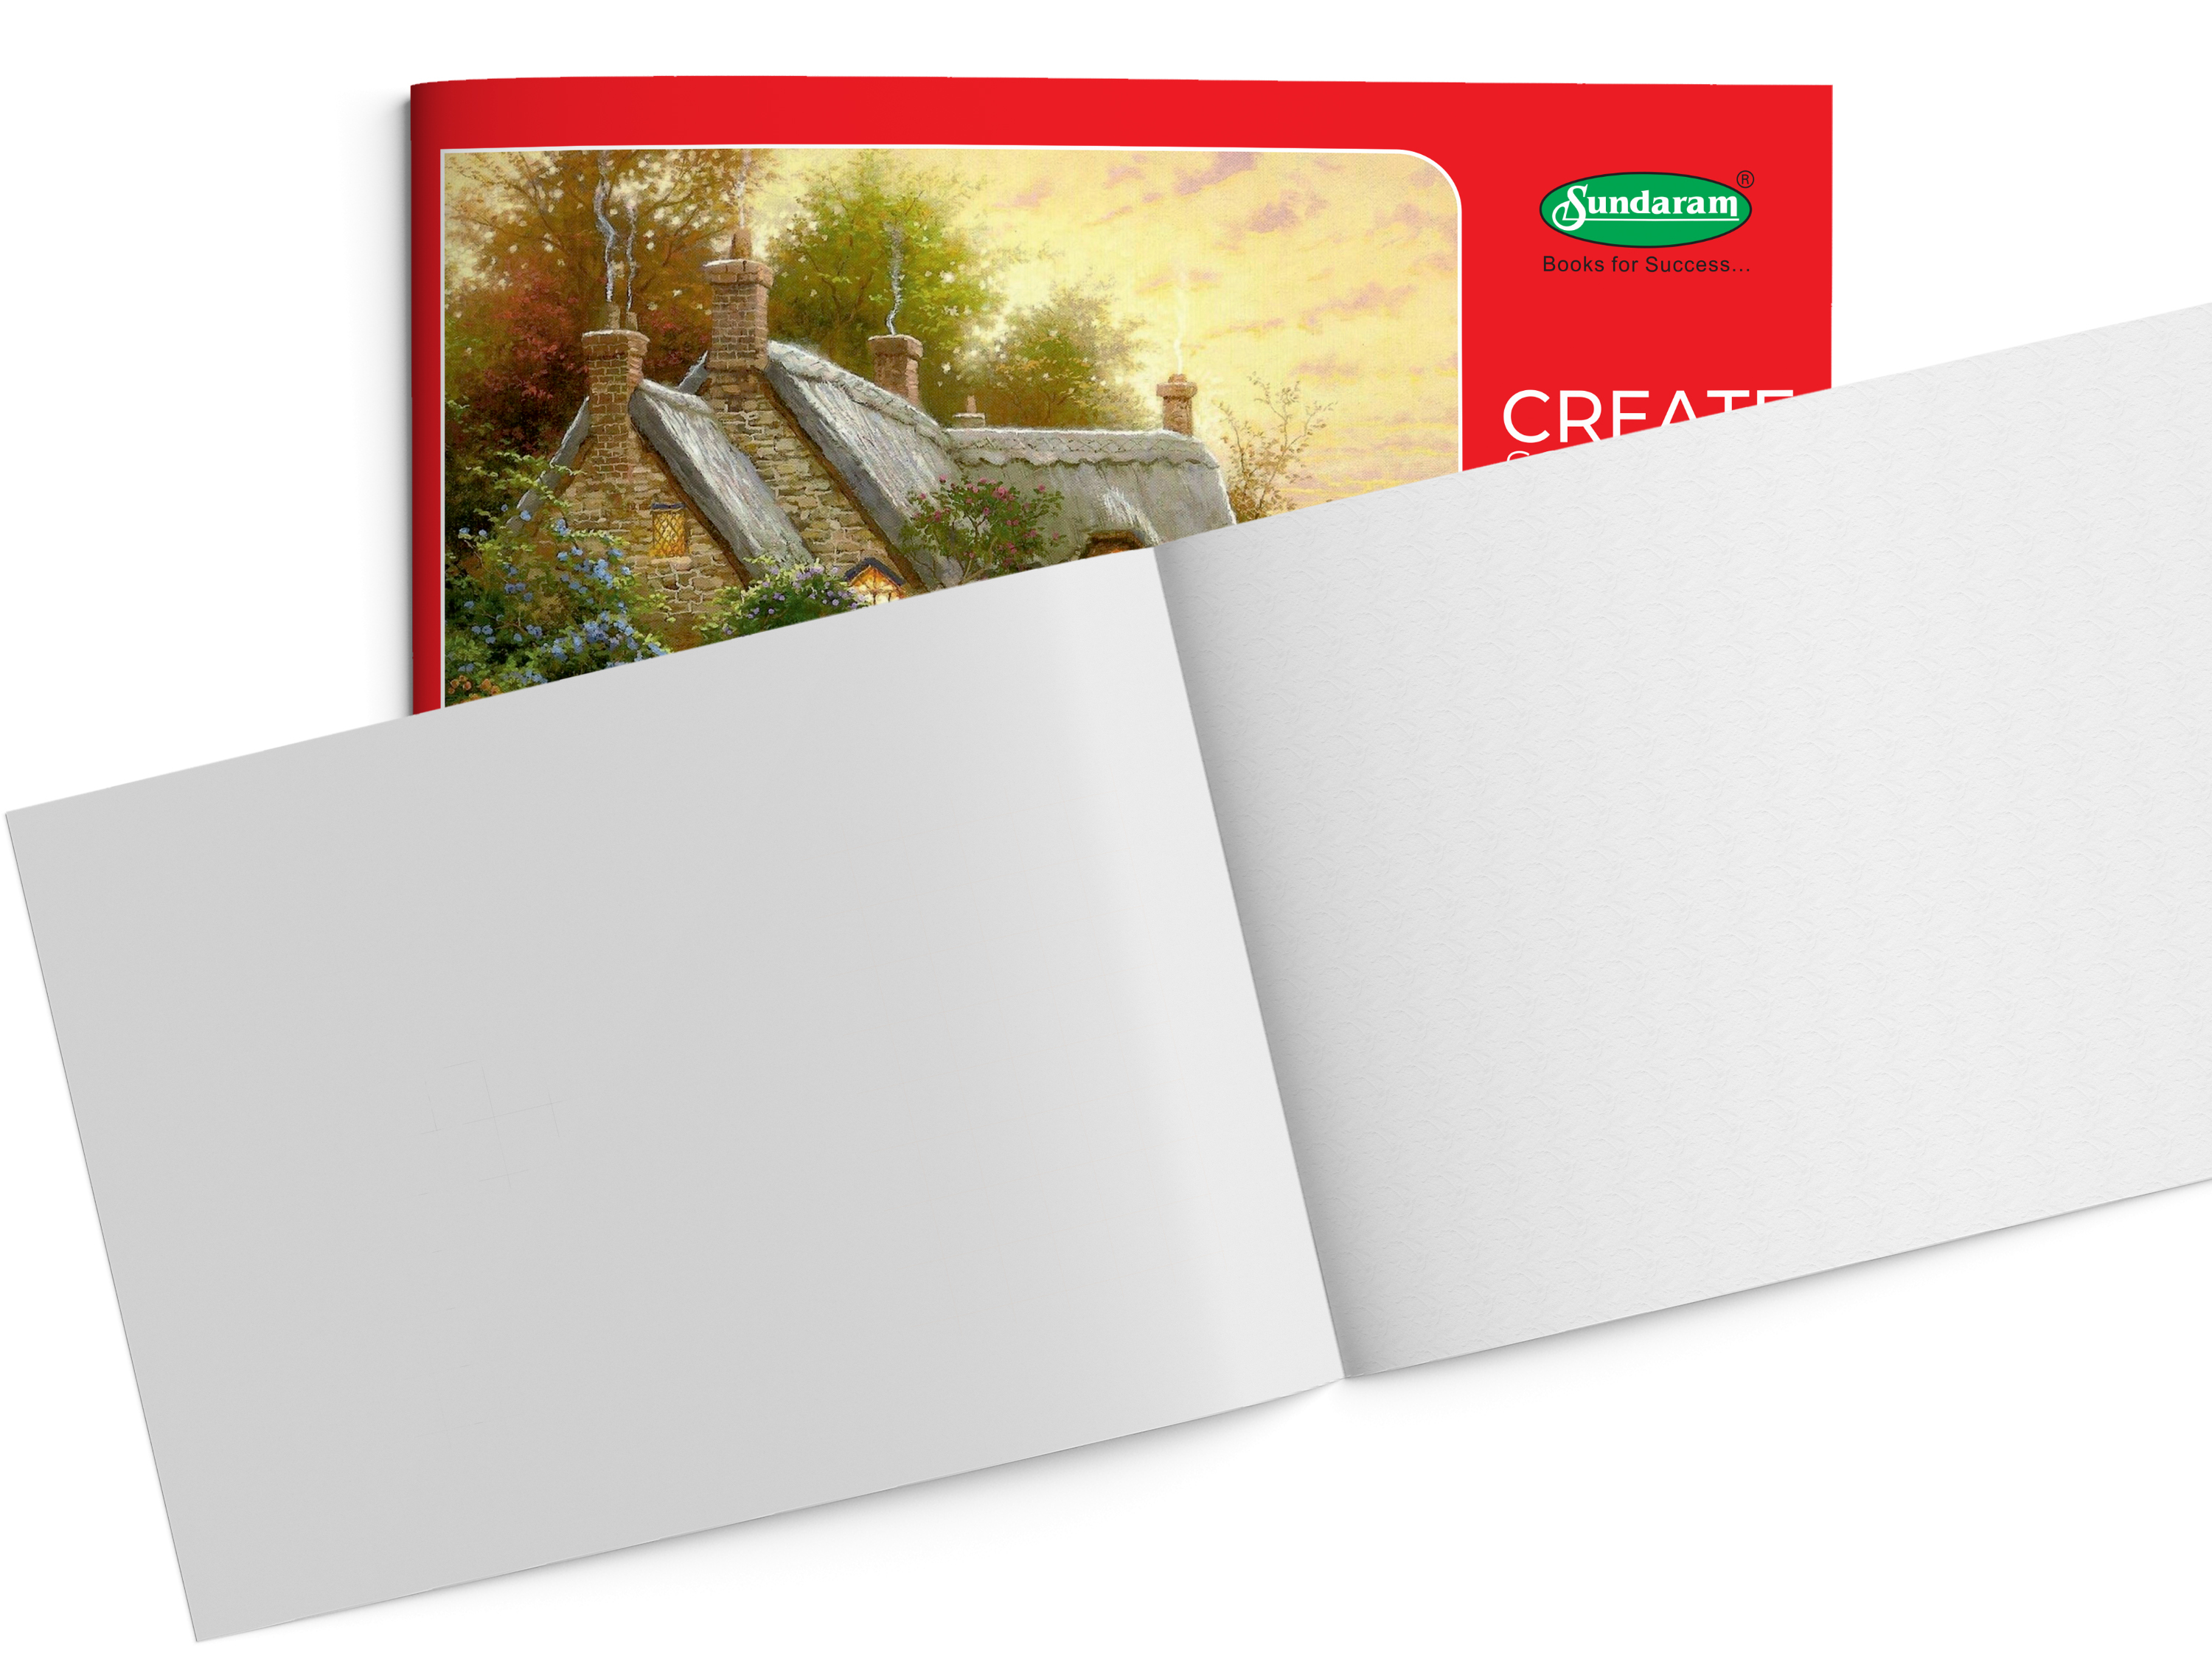 Sundaram Drawing Book - 3A (Red) - 36 Pages (D-3)